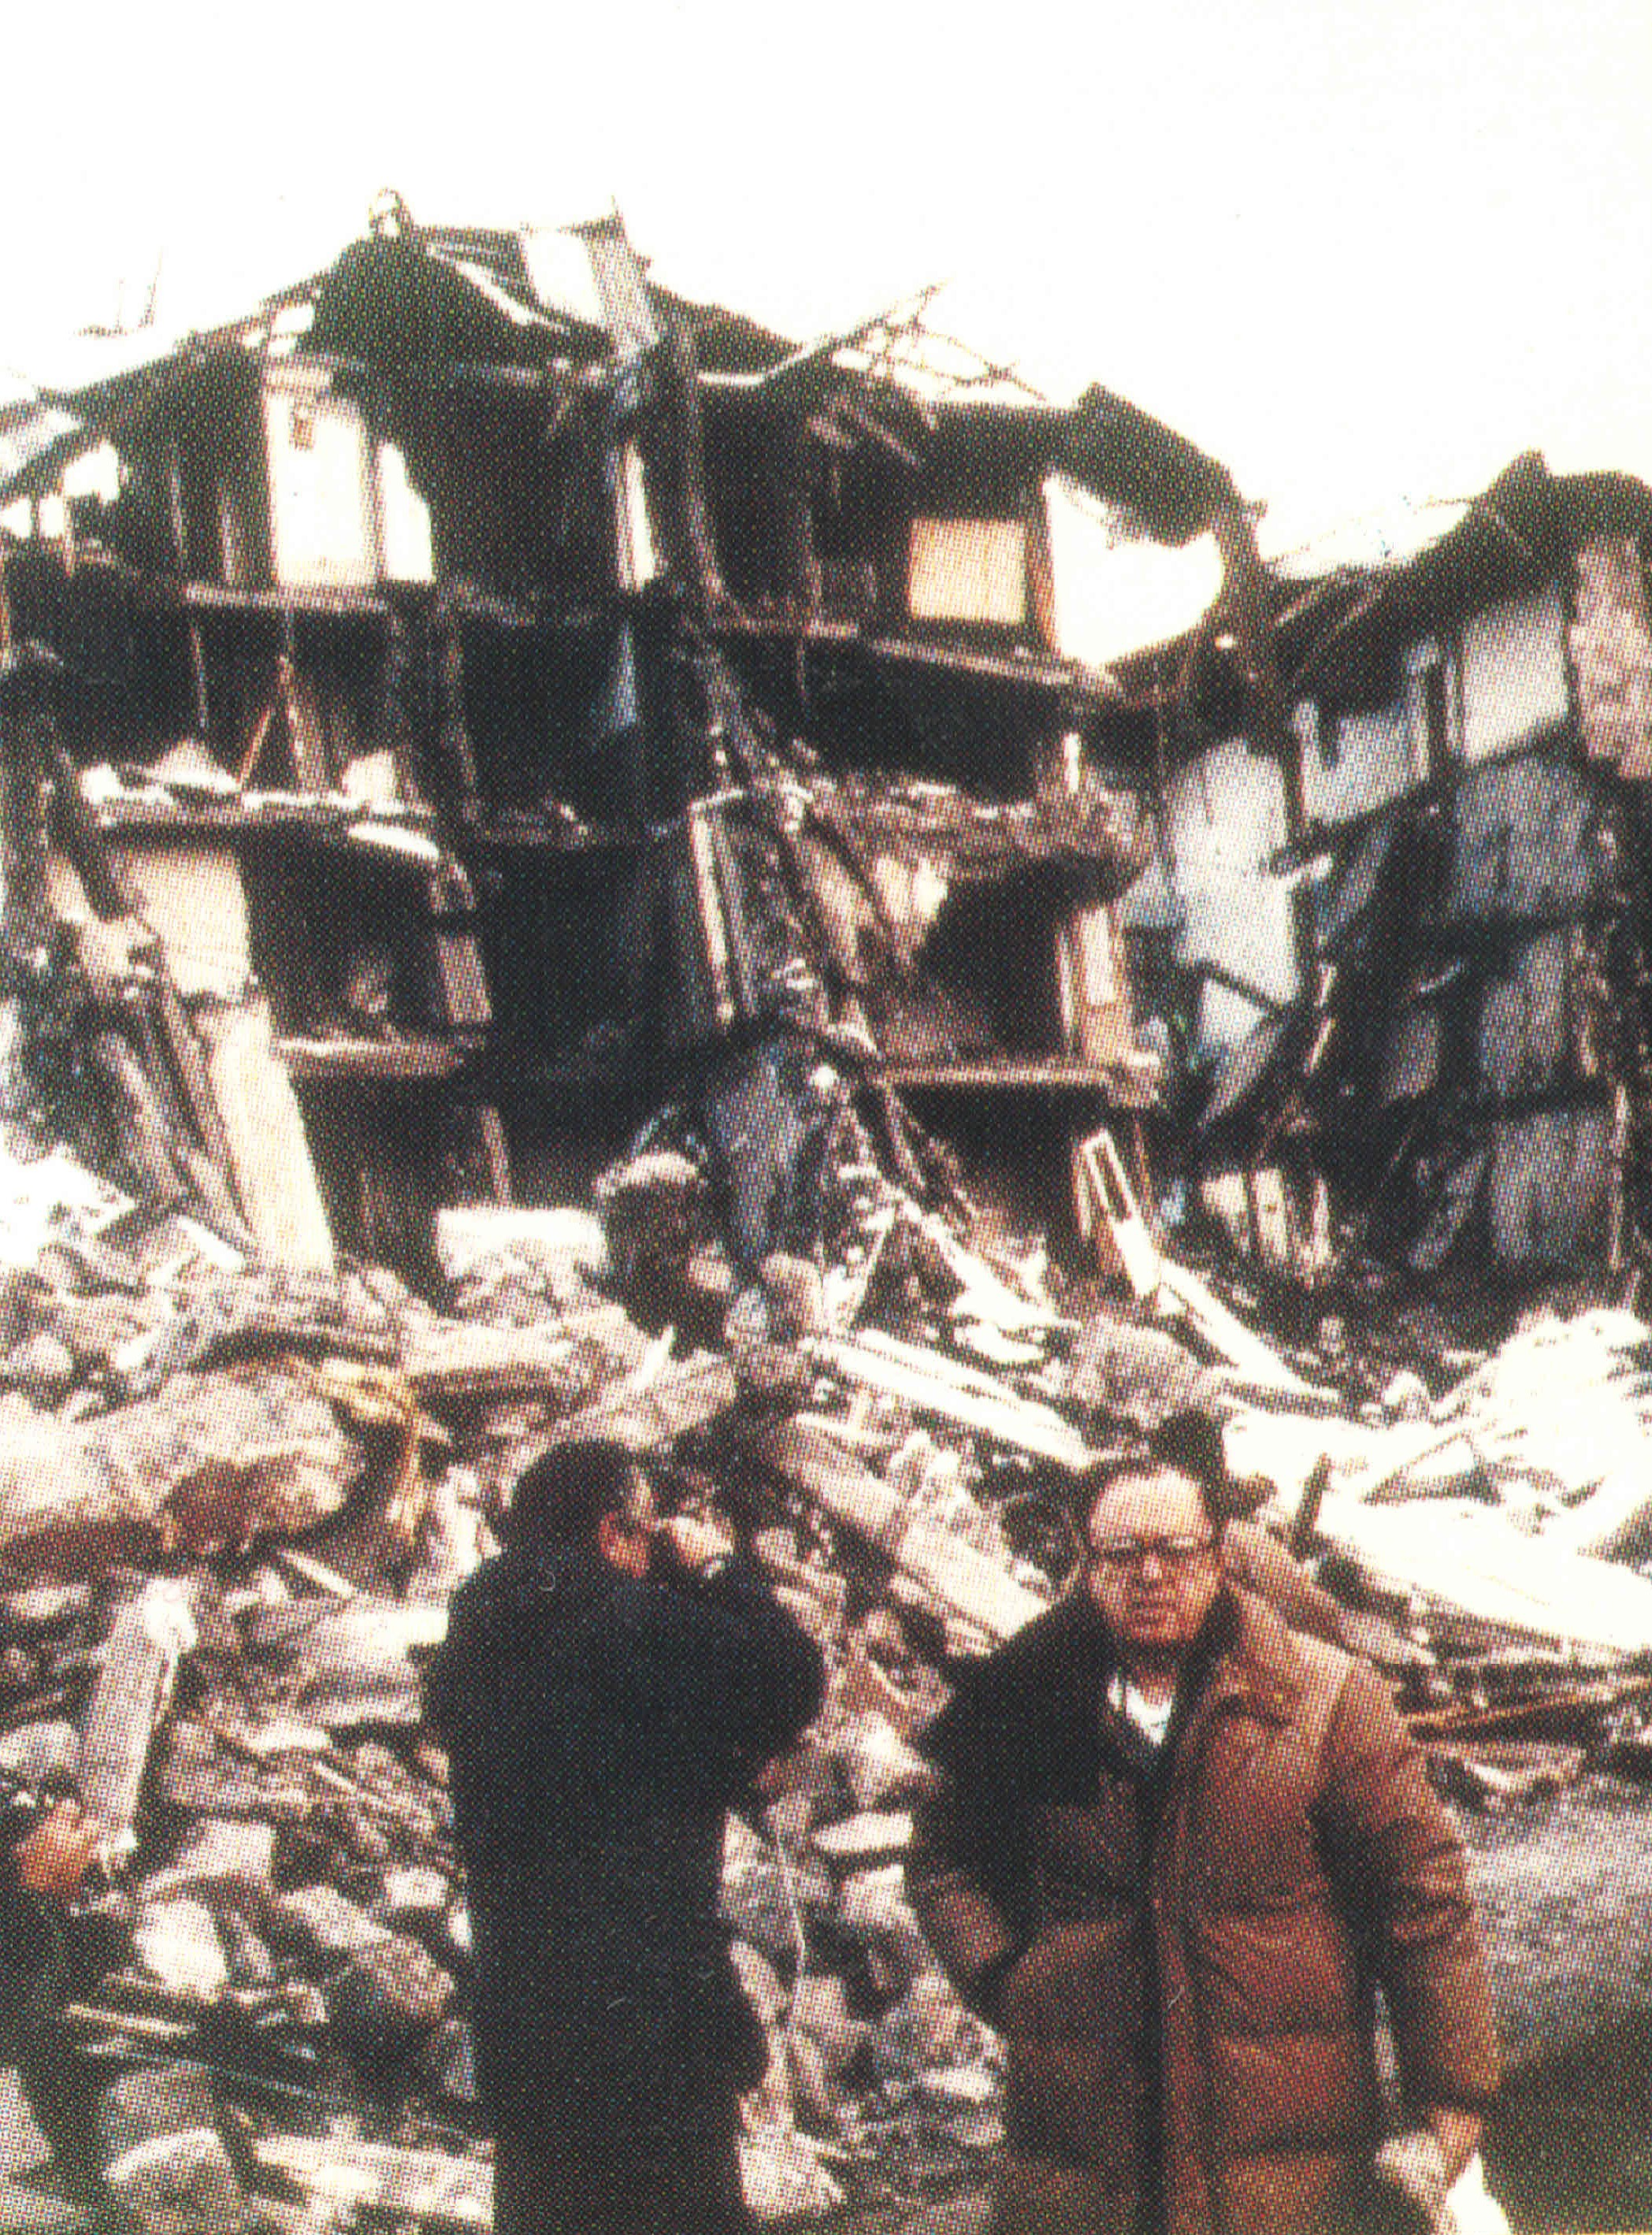 Mihran Agbabian surveying the 1988 earthquake in Gyumri.